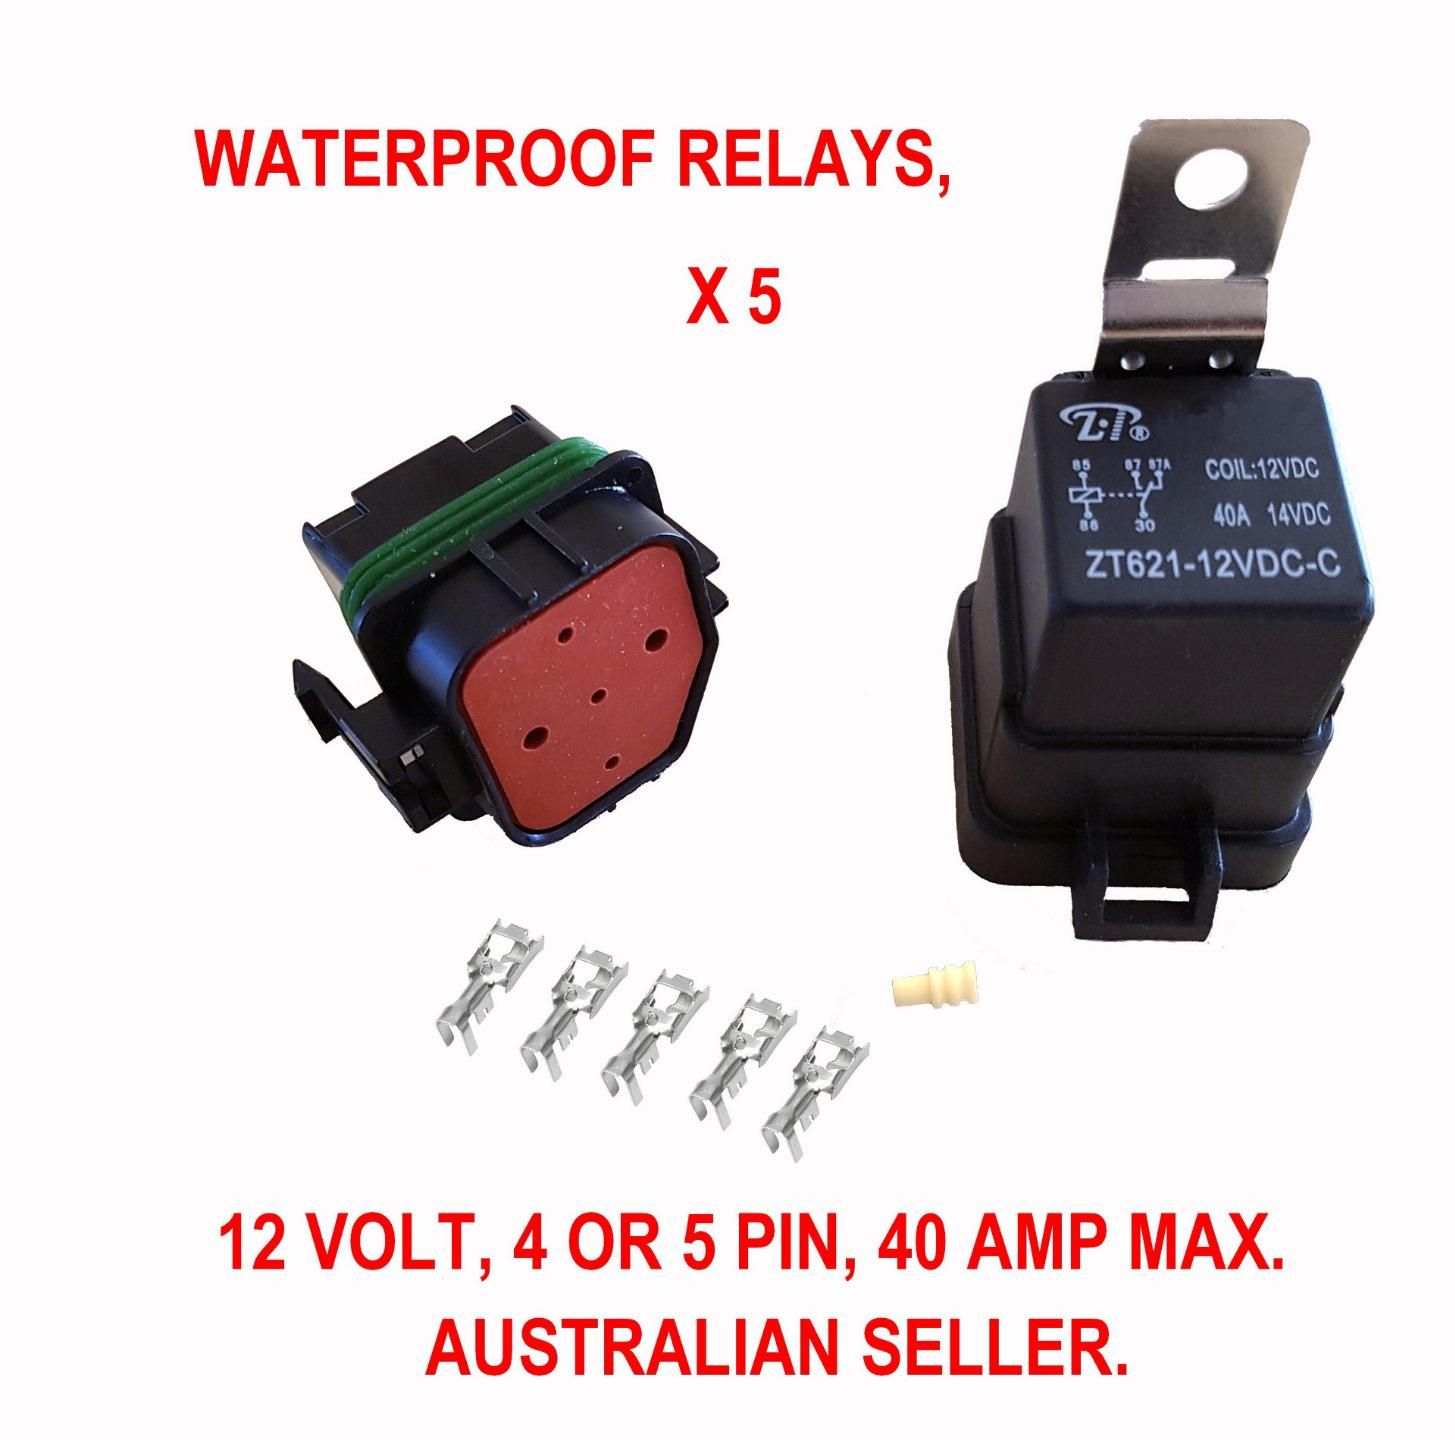 5 X Waterproof Relay 12 V Automotive 4 Pin 40 Amp Switch Volt 3 To For Multiple Relays And Save Also Available Are Blade Fuse Holders Click On The Bogbuster Logo Image Below Visit My Ebay Store